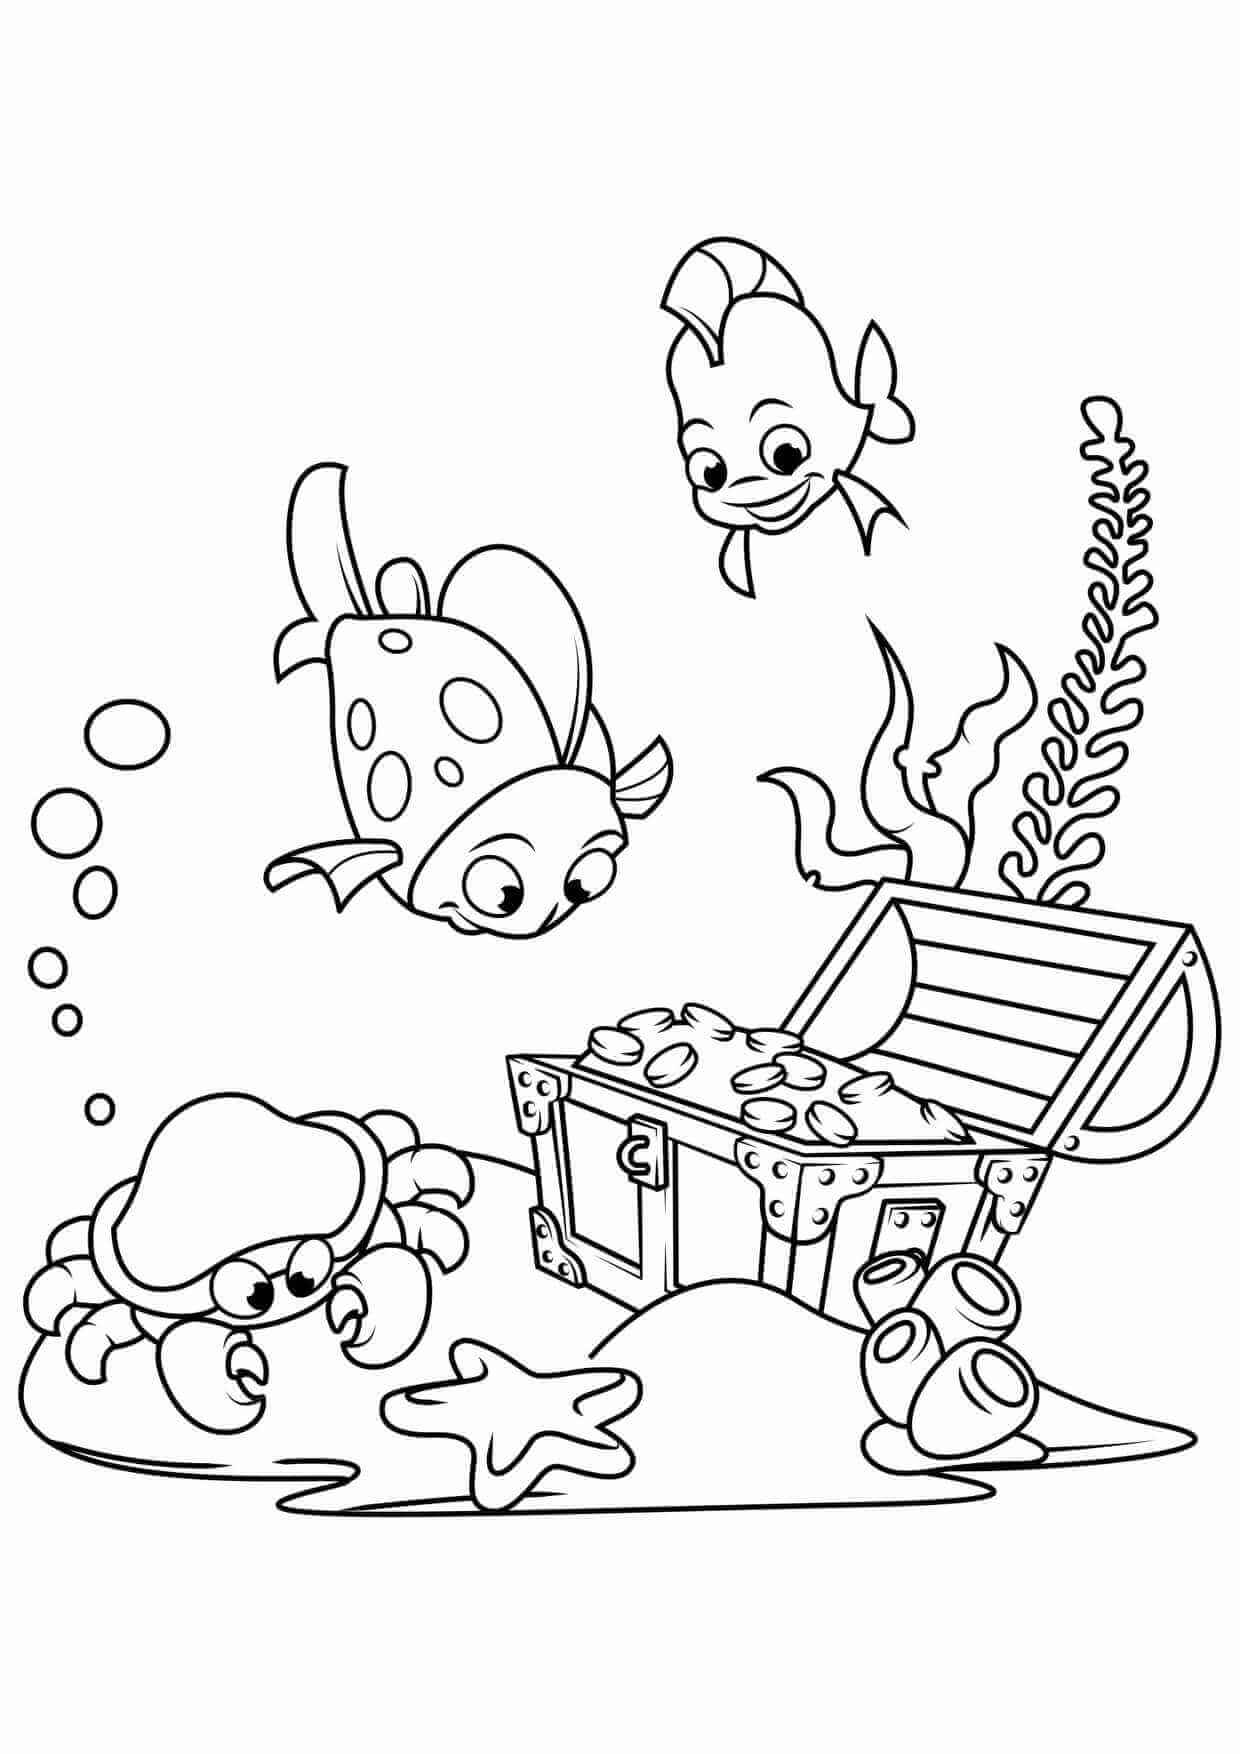 coloring sheet girl cute girl coloring pages to download and print for free sheet girl coloring